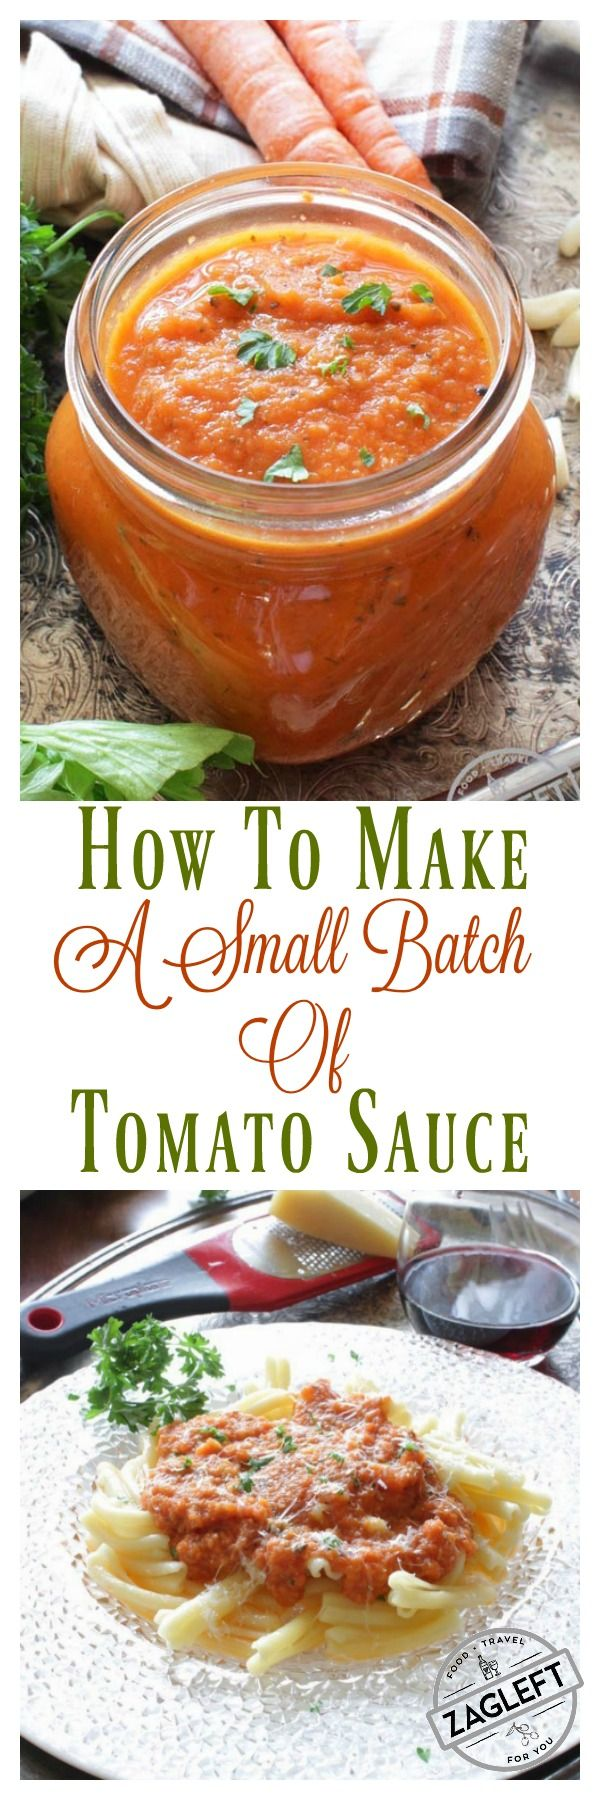 Easy recipe for a small batch of tomato sauce. Quick, easy and full of flavor. For other single serving recipes visit http://zagleft.com